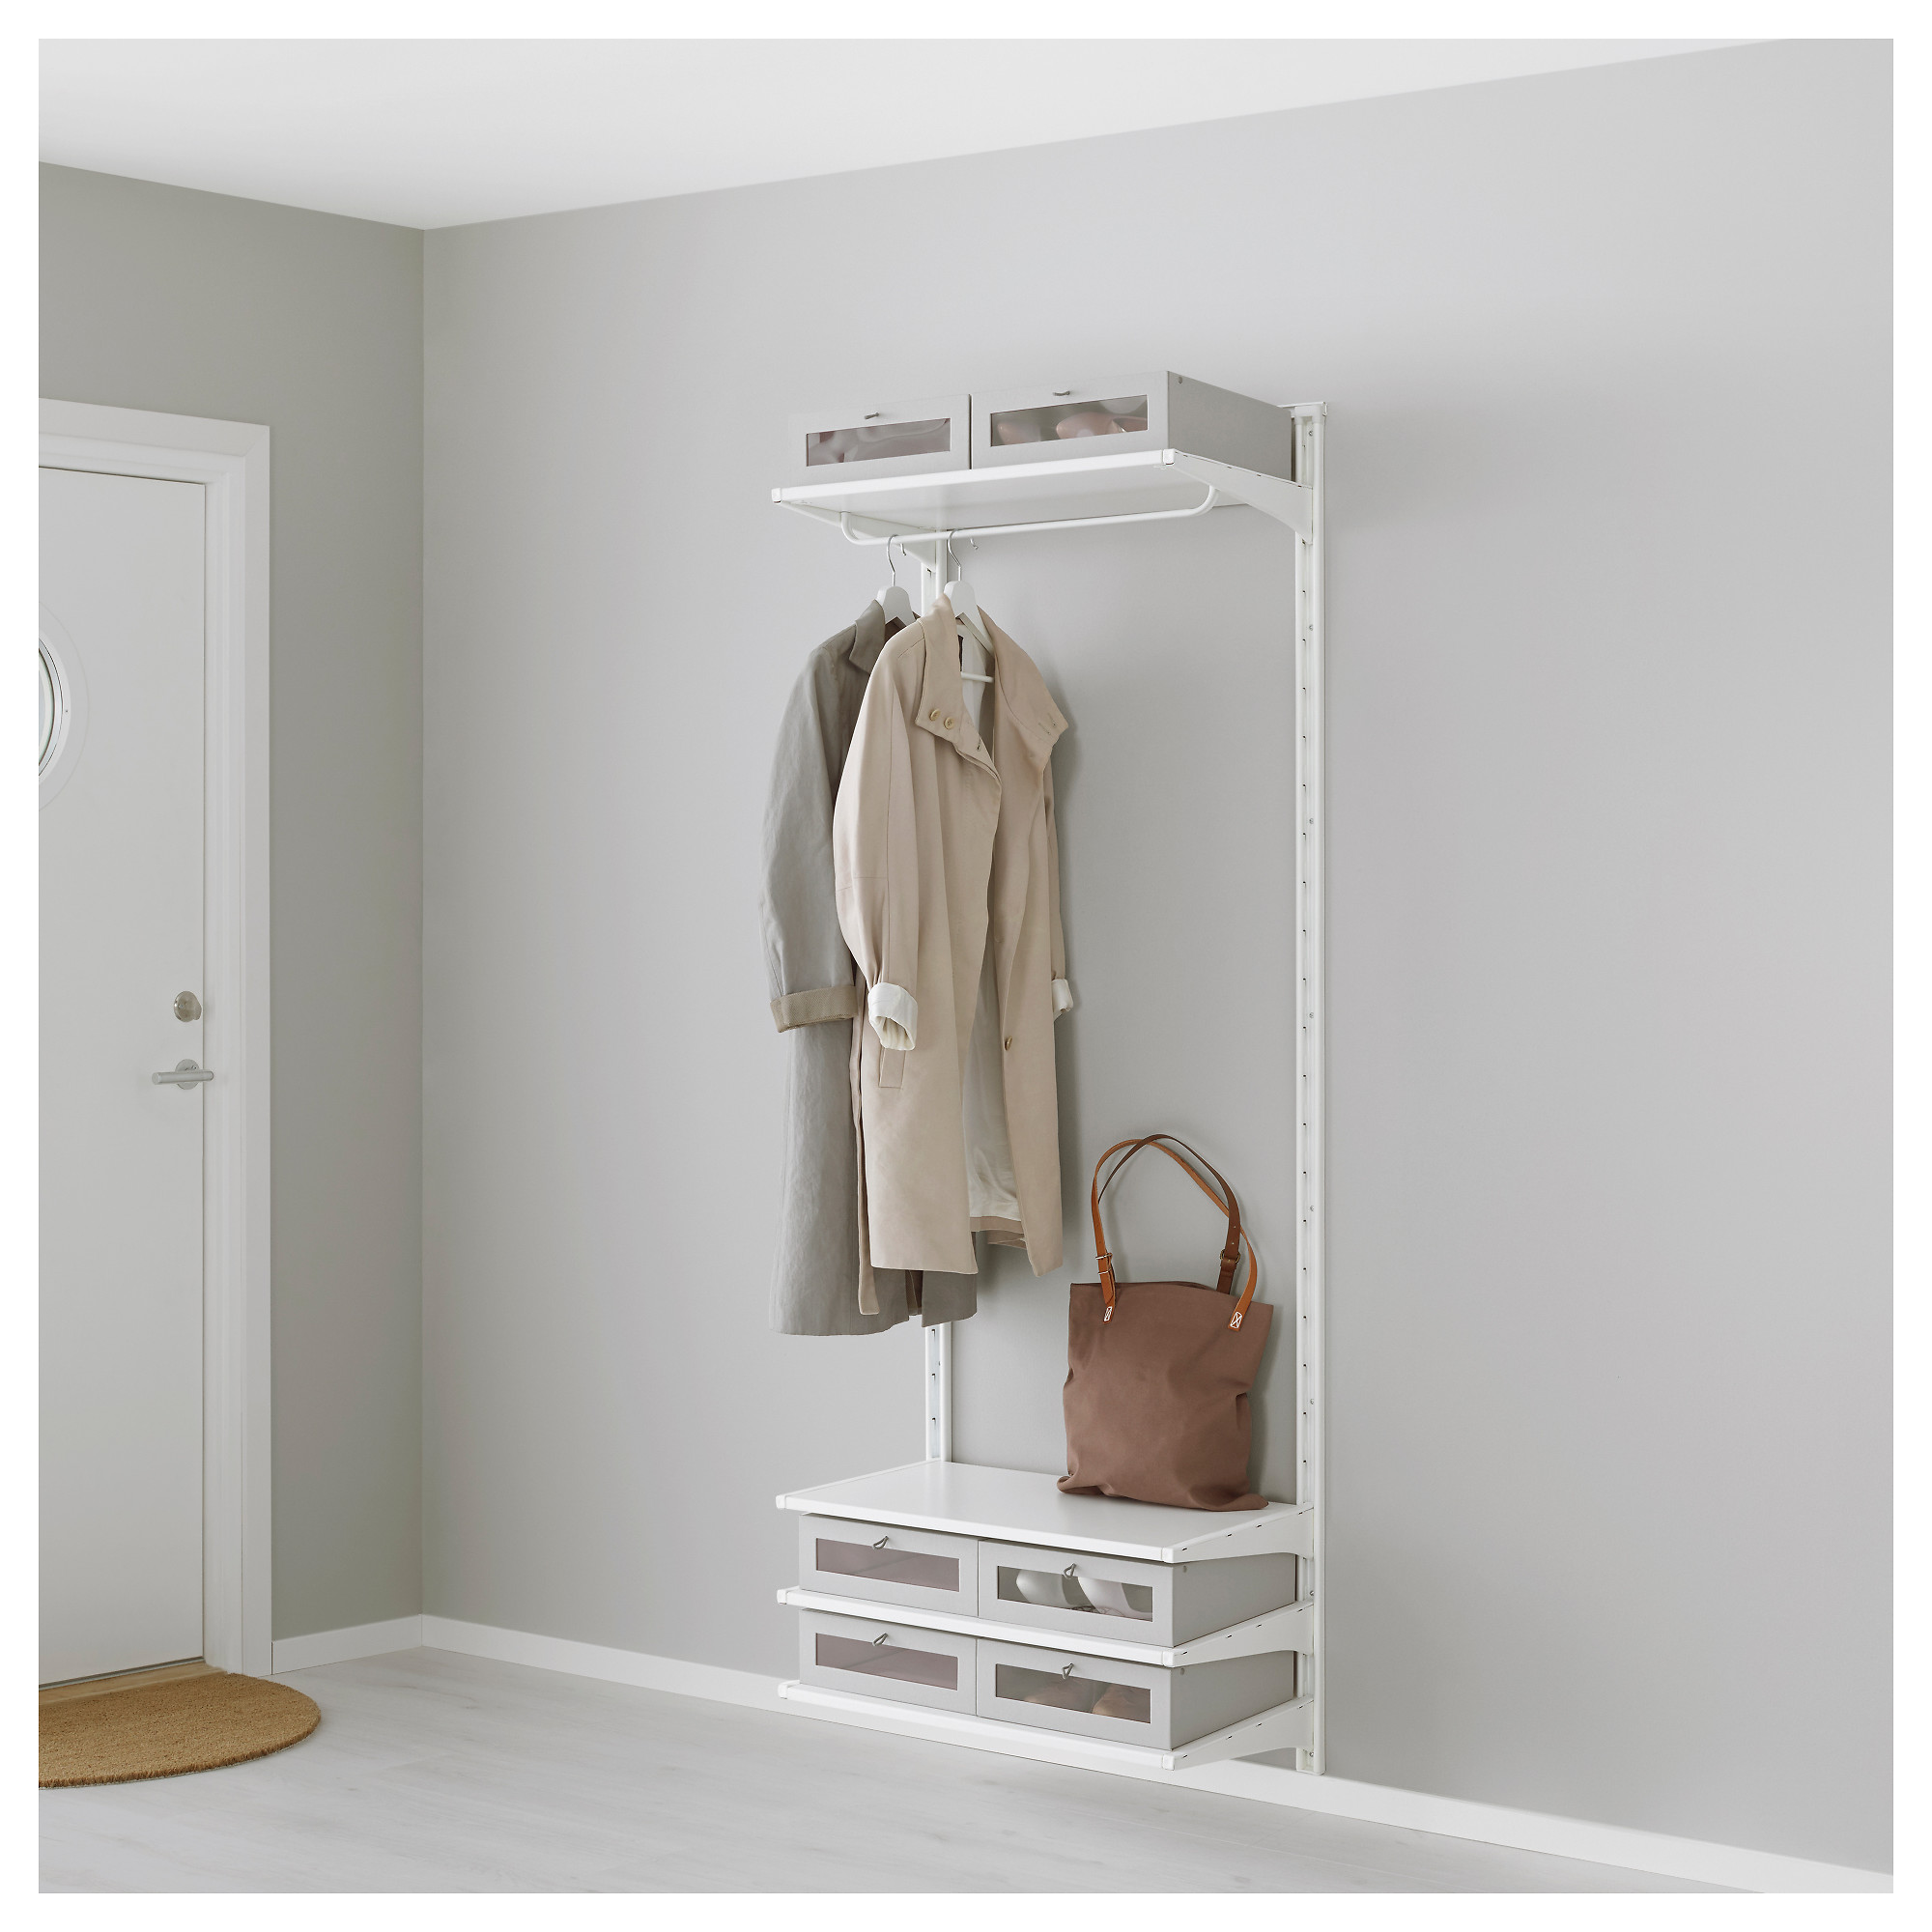 ALGOT Wall Upright Shelves Rod